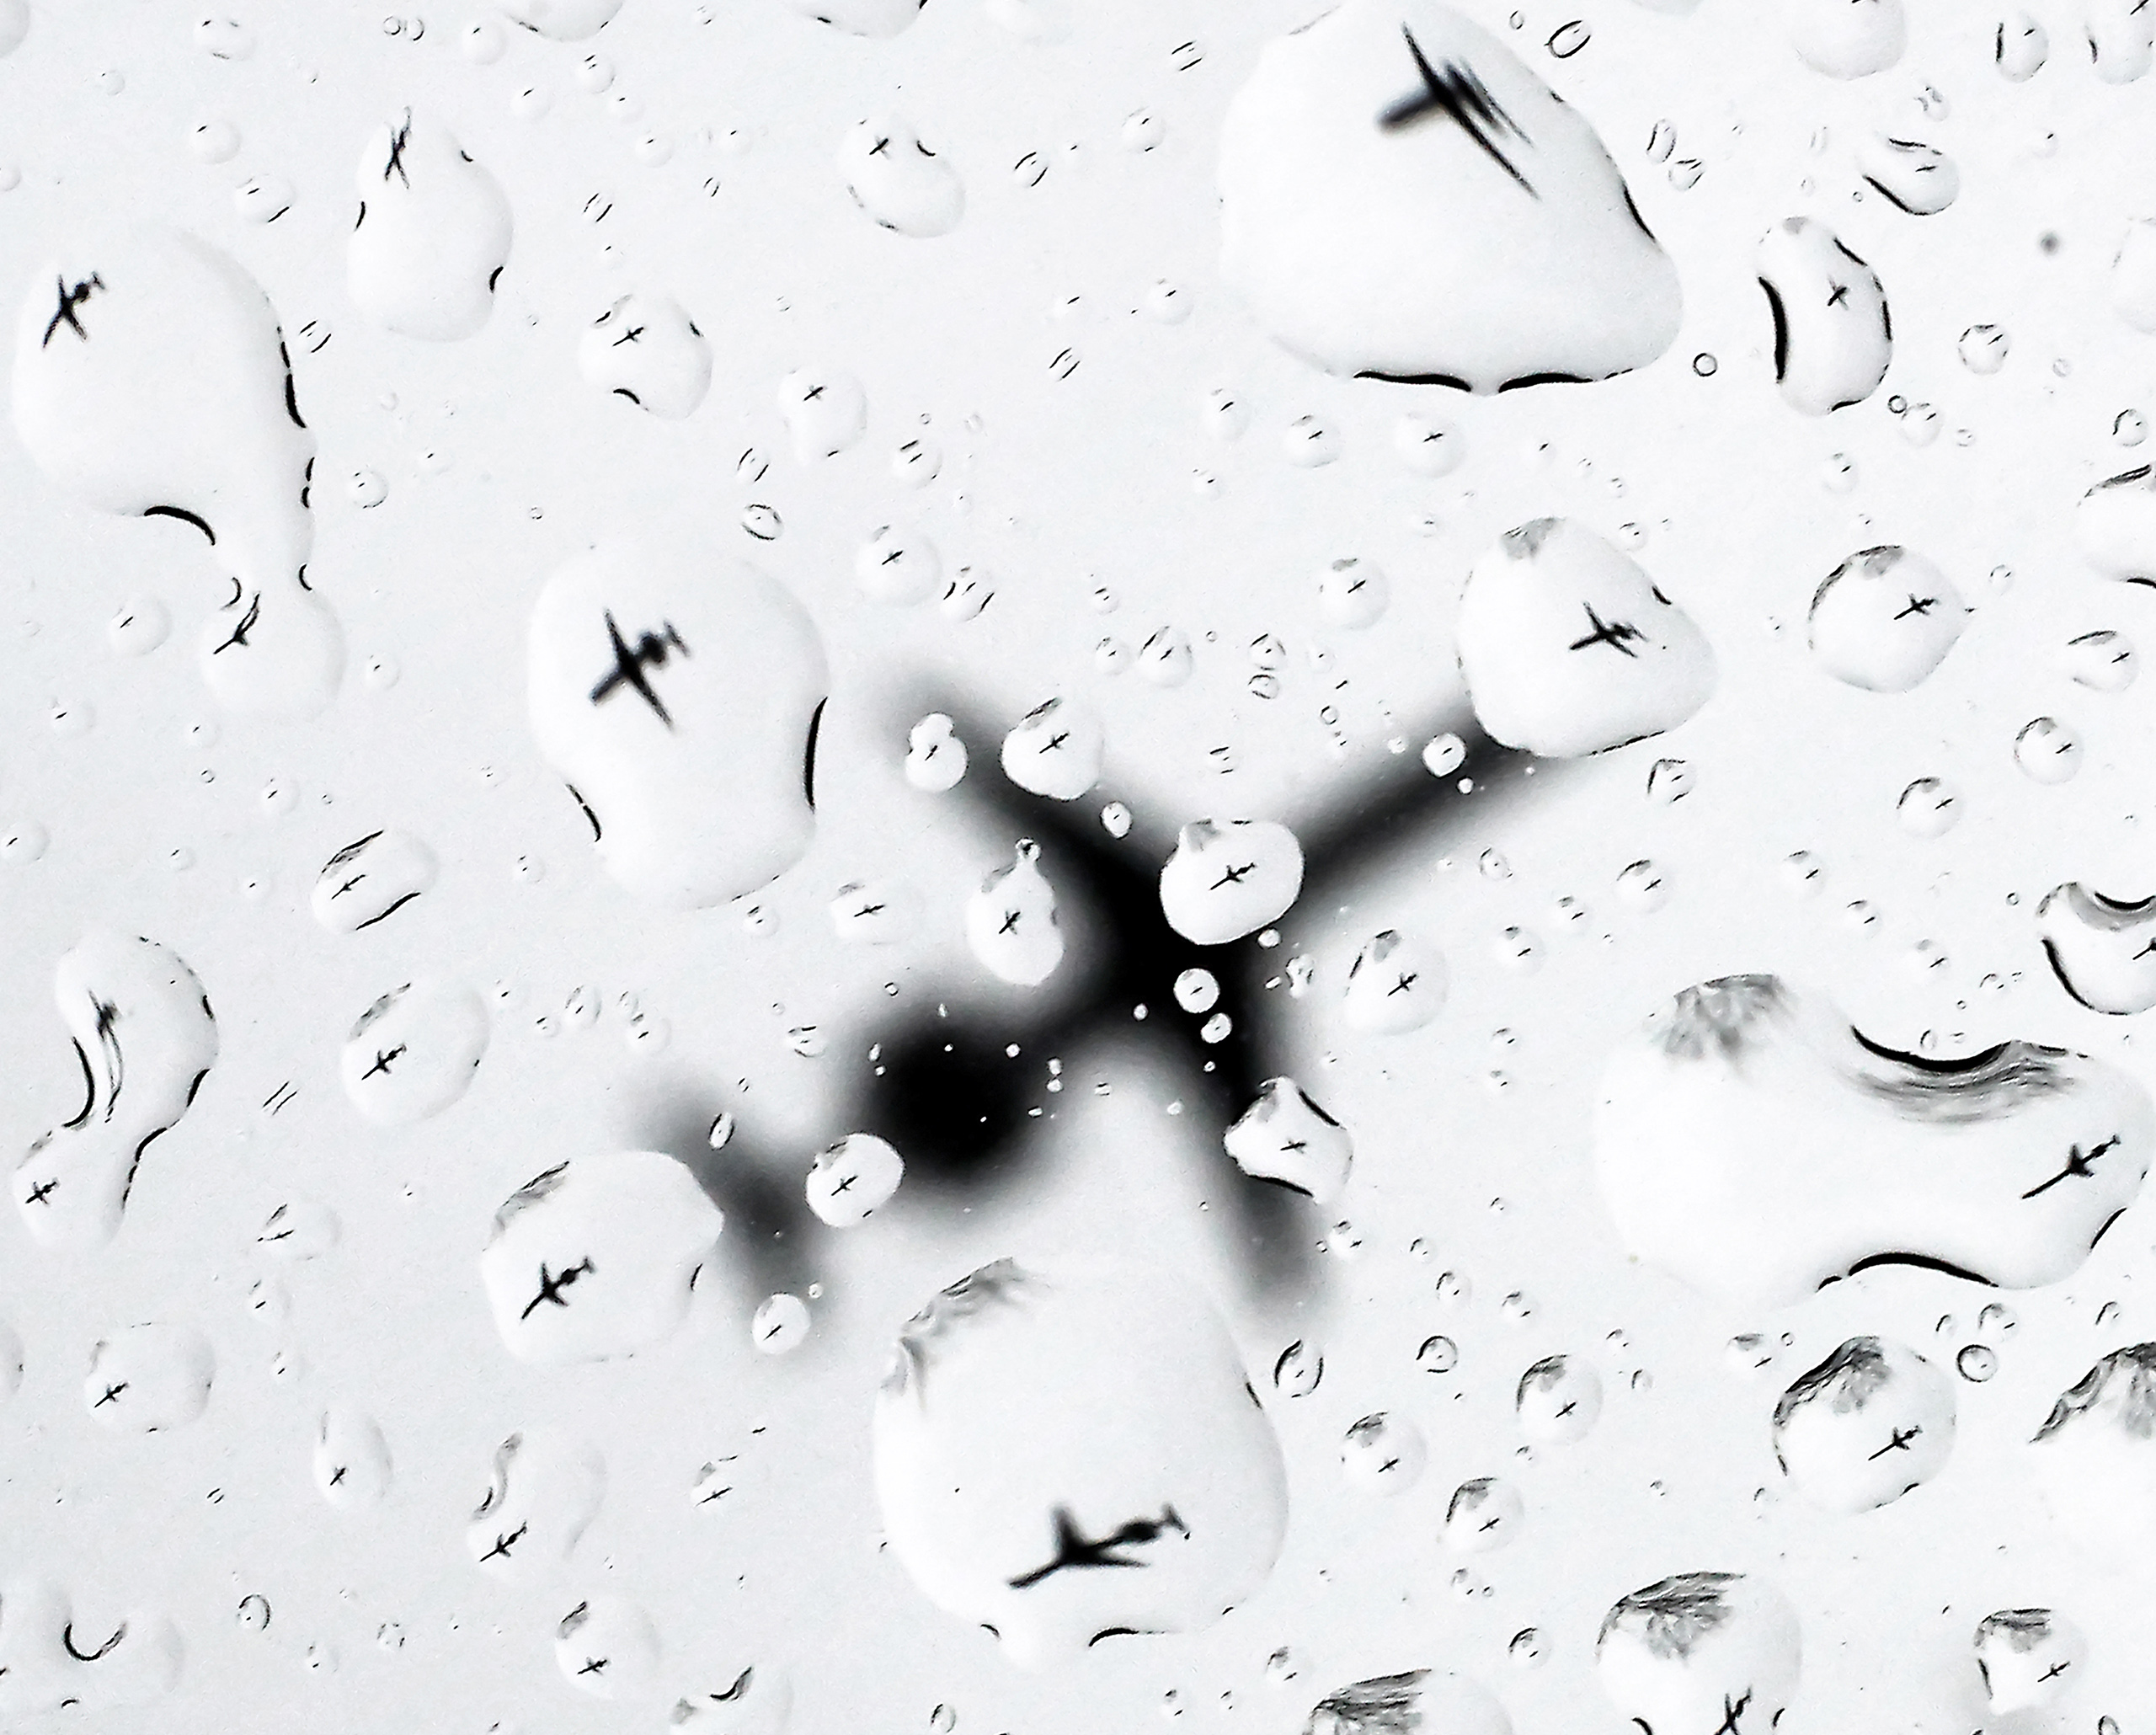 As a spring storm makes its way through the region, a plane is refracted in the raindrops on a vehicle window as it approaches the Dane County Regional airport in Madison, Wis., on March 23, 2016.